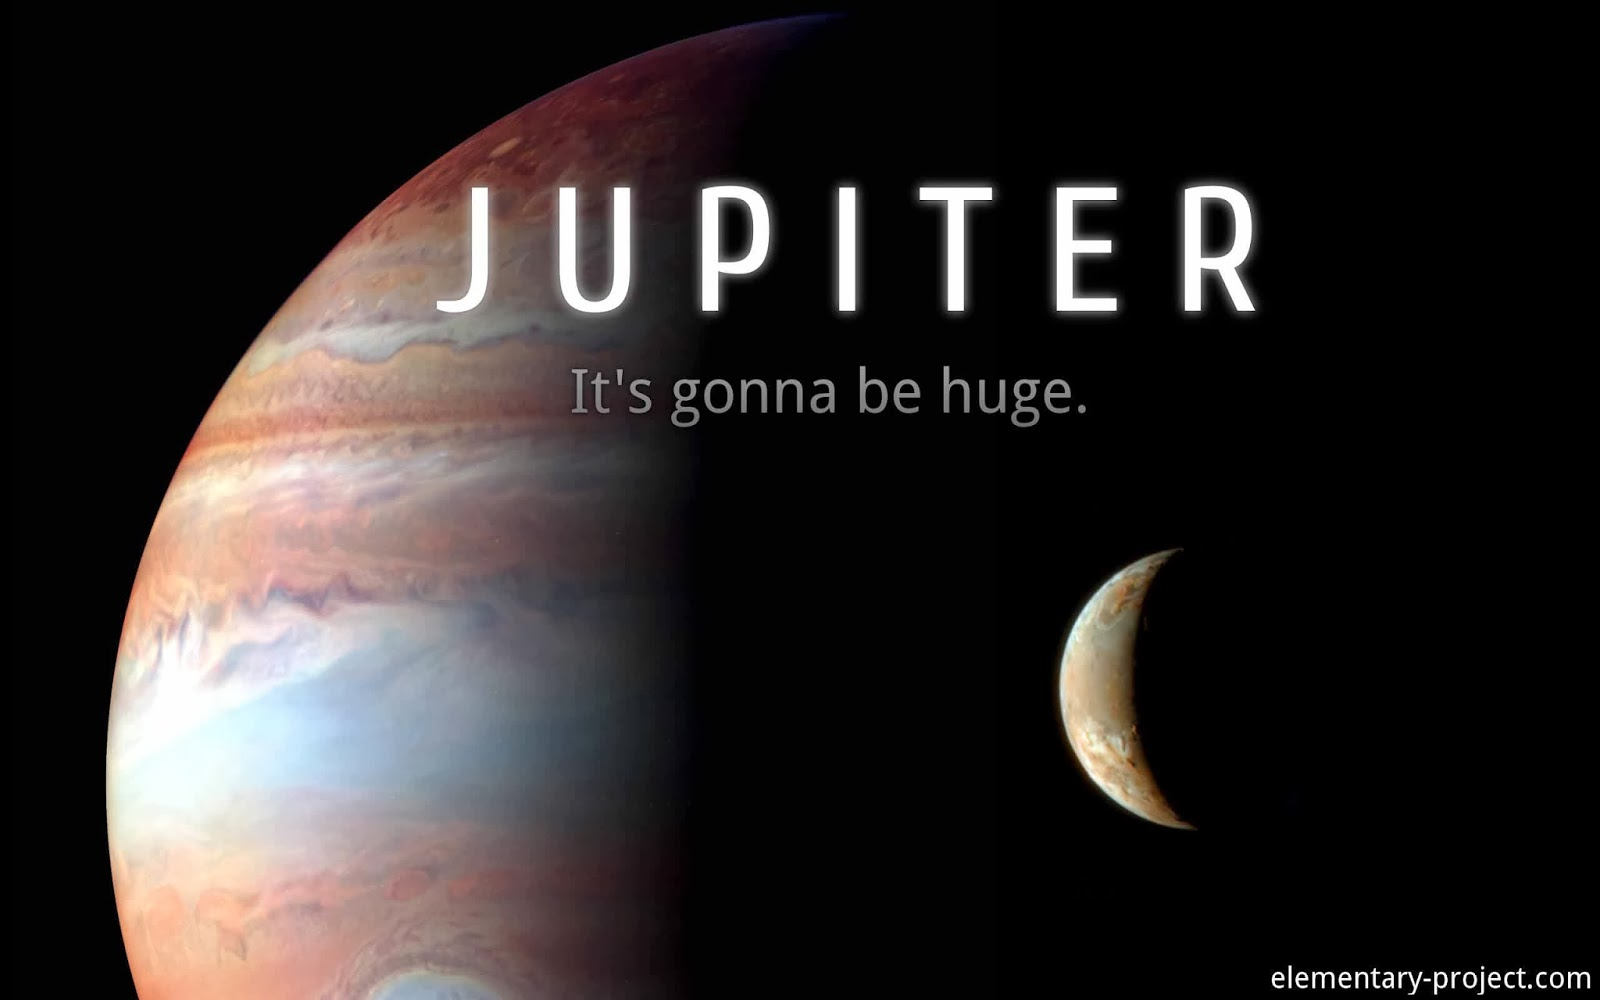 Free Animated Wallpapers For Mobile Phones Hd Wallpapers Jupiter Wallpapers